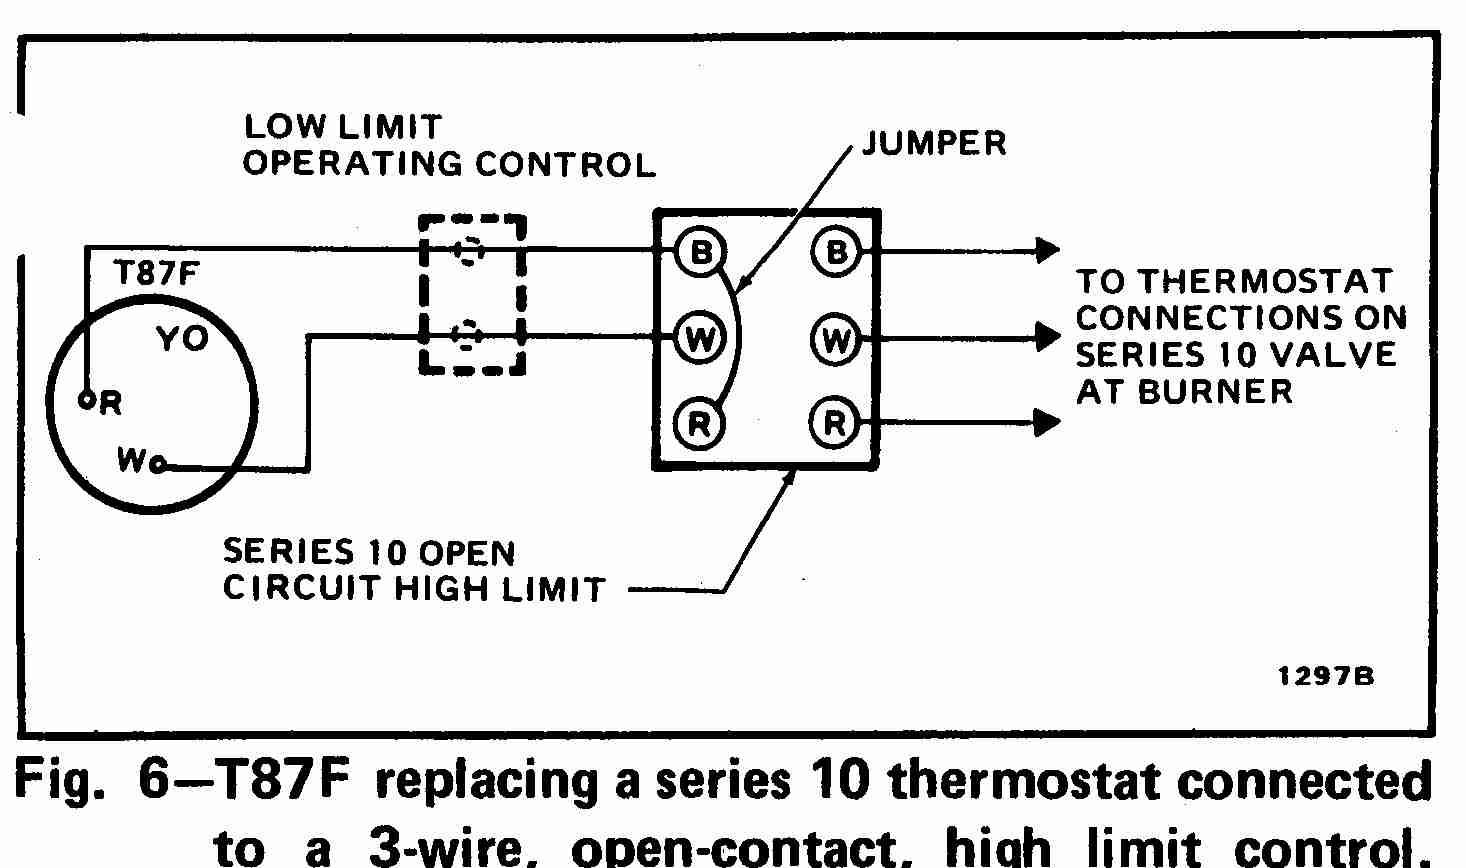 TT_T87F_0002_3WHL_DJF room thermostat wiring diagrams for hvac systems capillary thermostat wiring diagram at panicattacktreatment.co